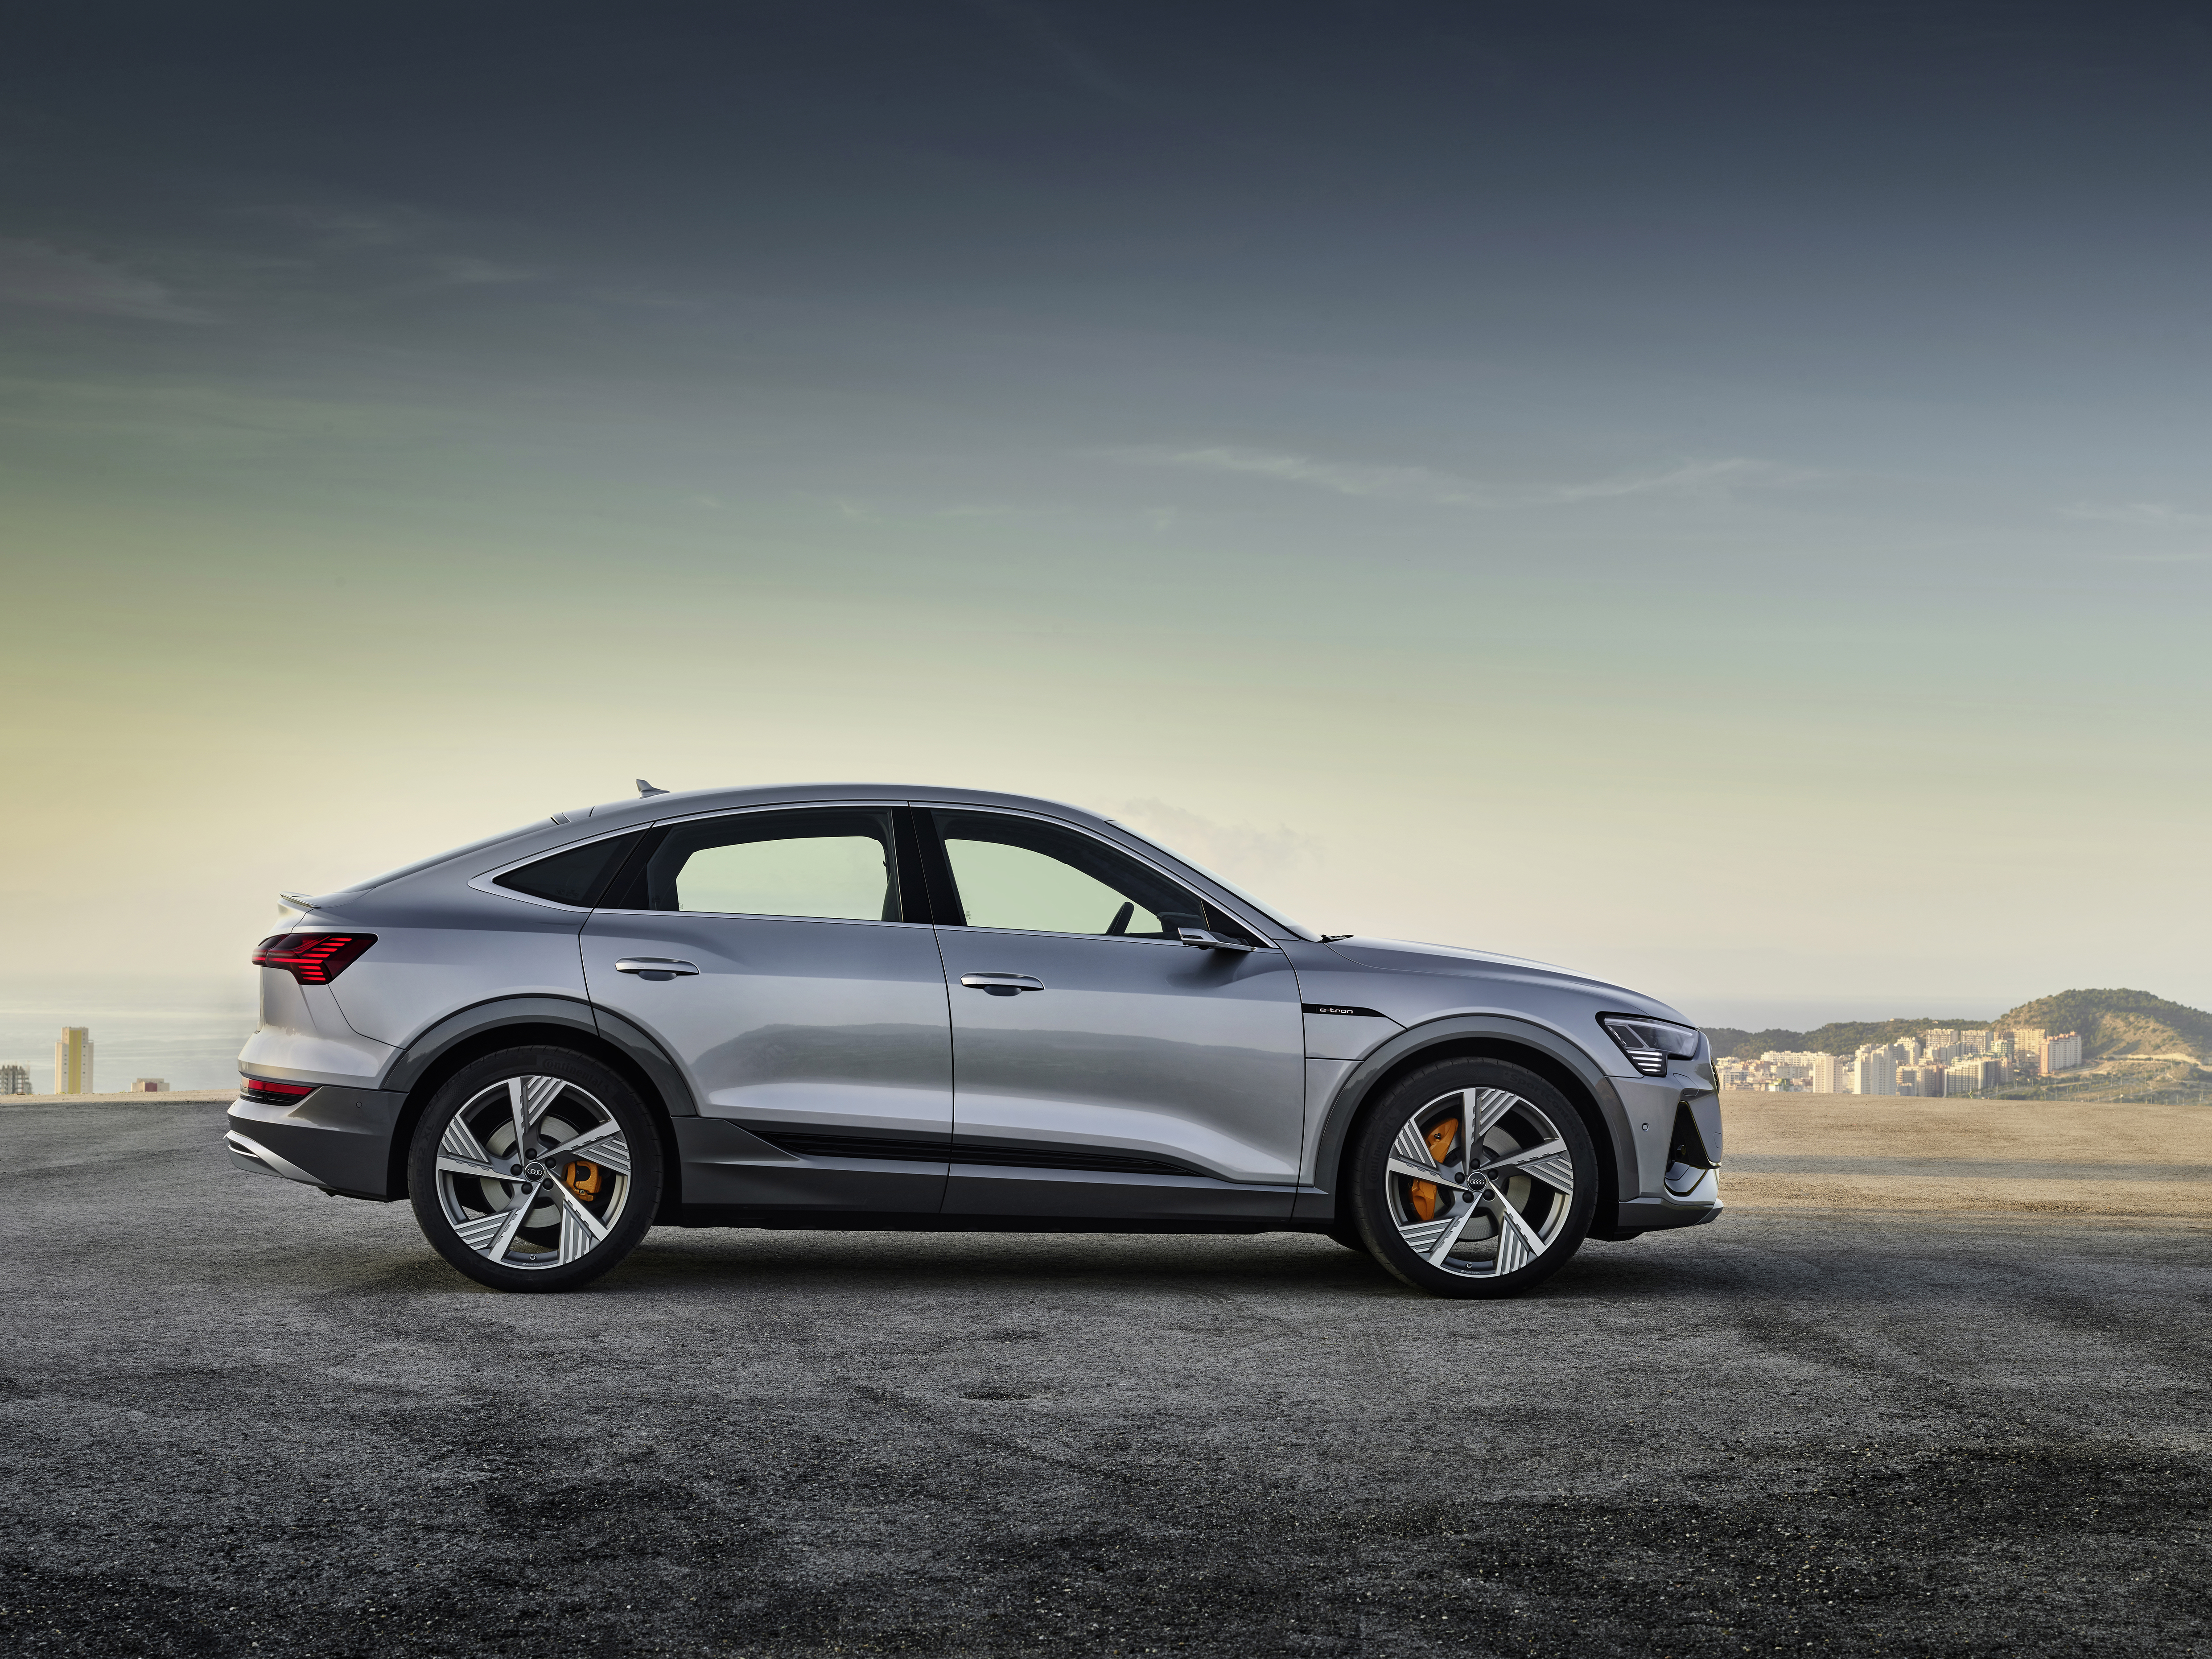 Audi S Next All Electric Vehicle The E Tron Sportback Is A Coupe Suv Techcrunch